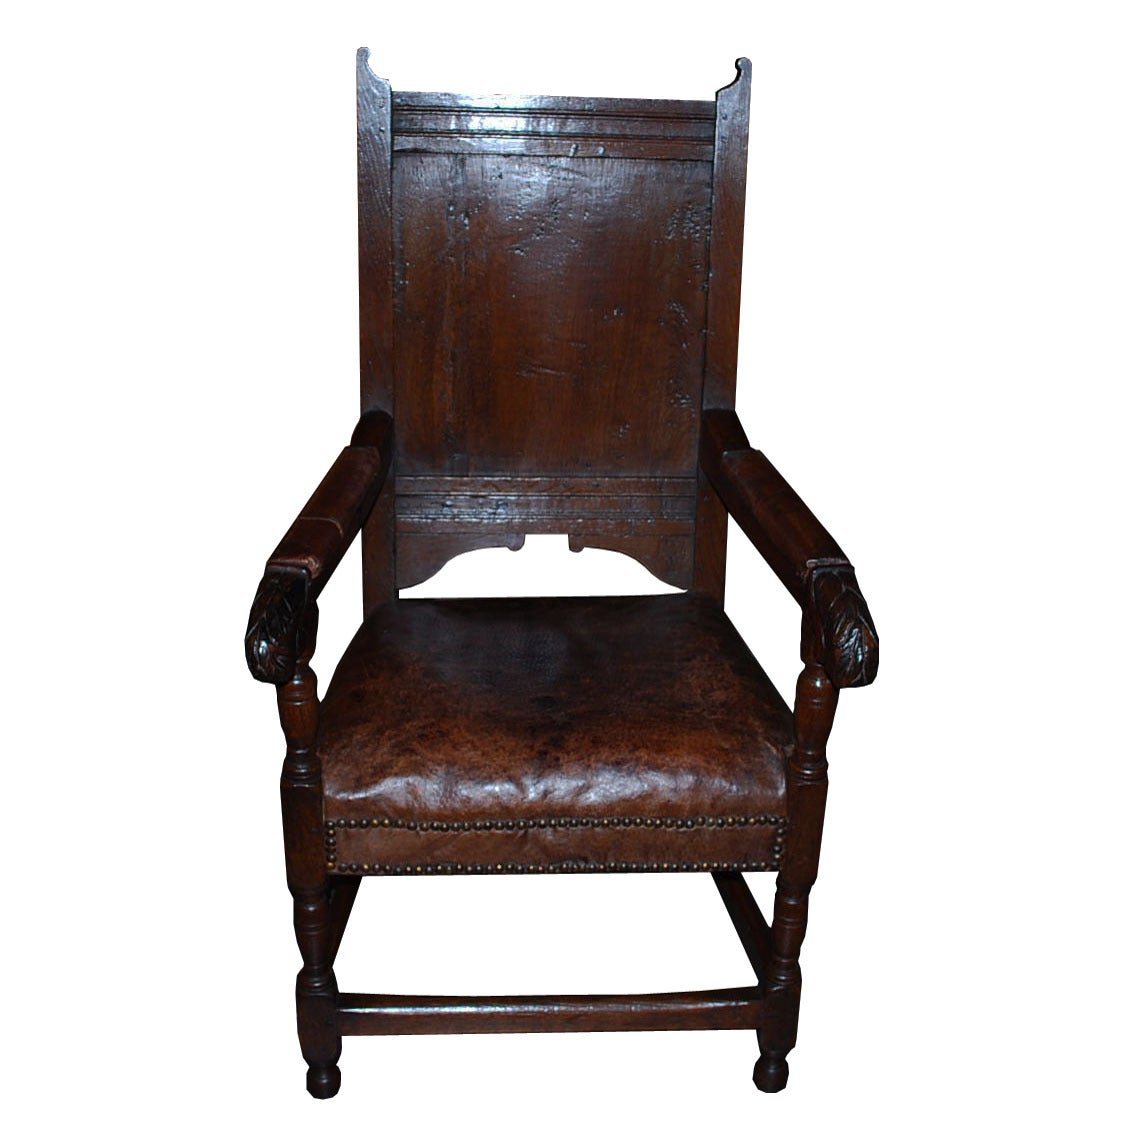 18th century oakwood armchair ladychair for sale at 1stdibs for Oakwood furniture